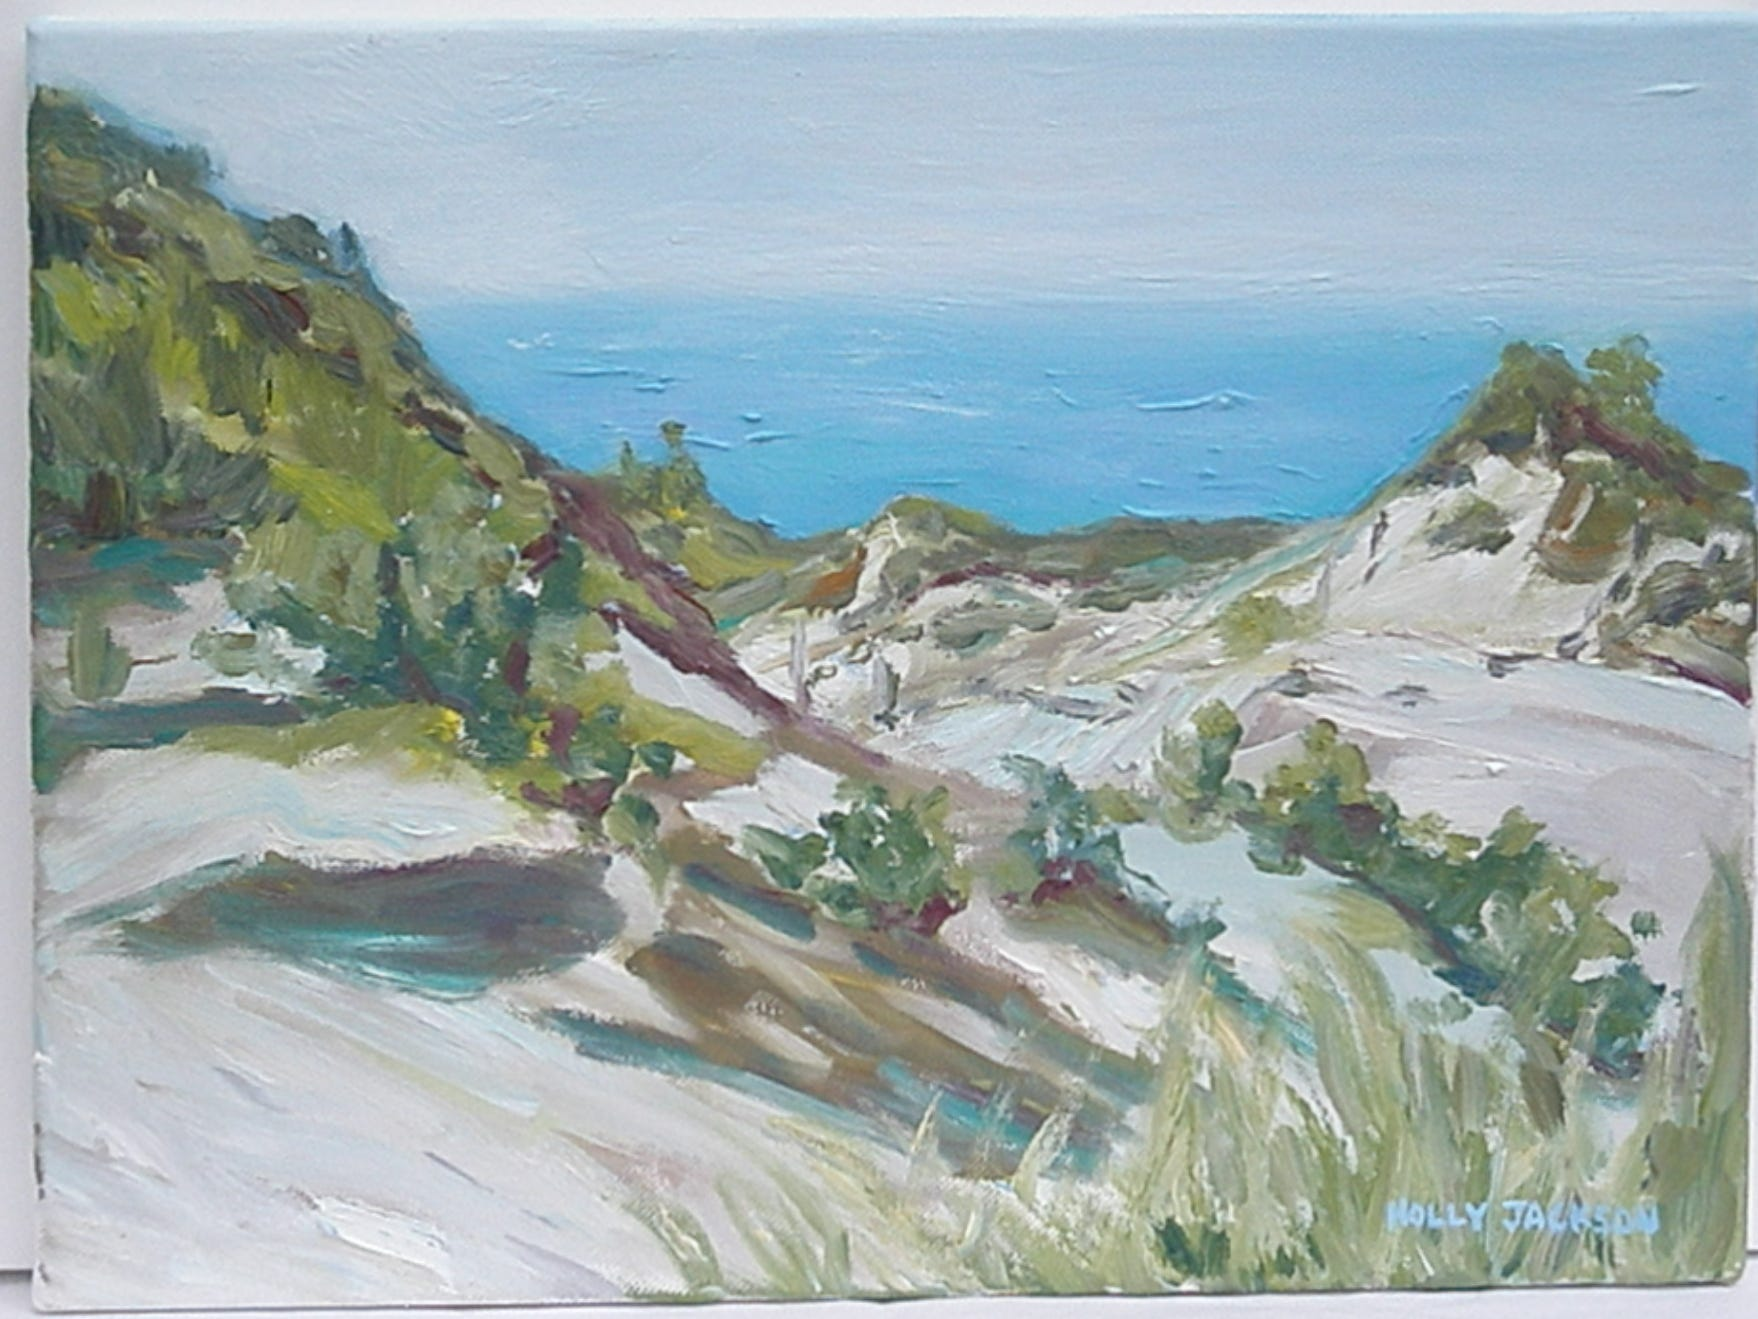 Holly Jackson painted this scene of the Indiana Dunes, which was provided by the Indiana Dunes Convention and Visitors Bureau.